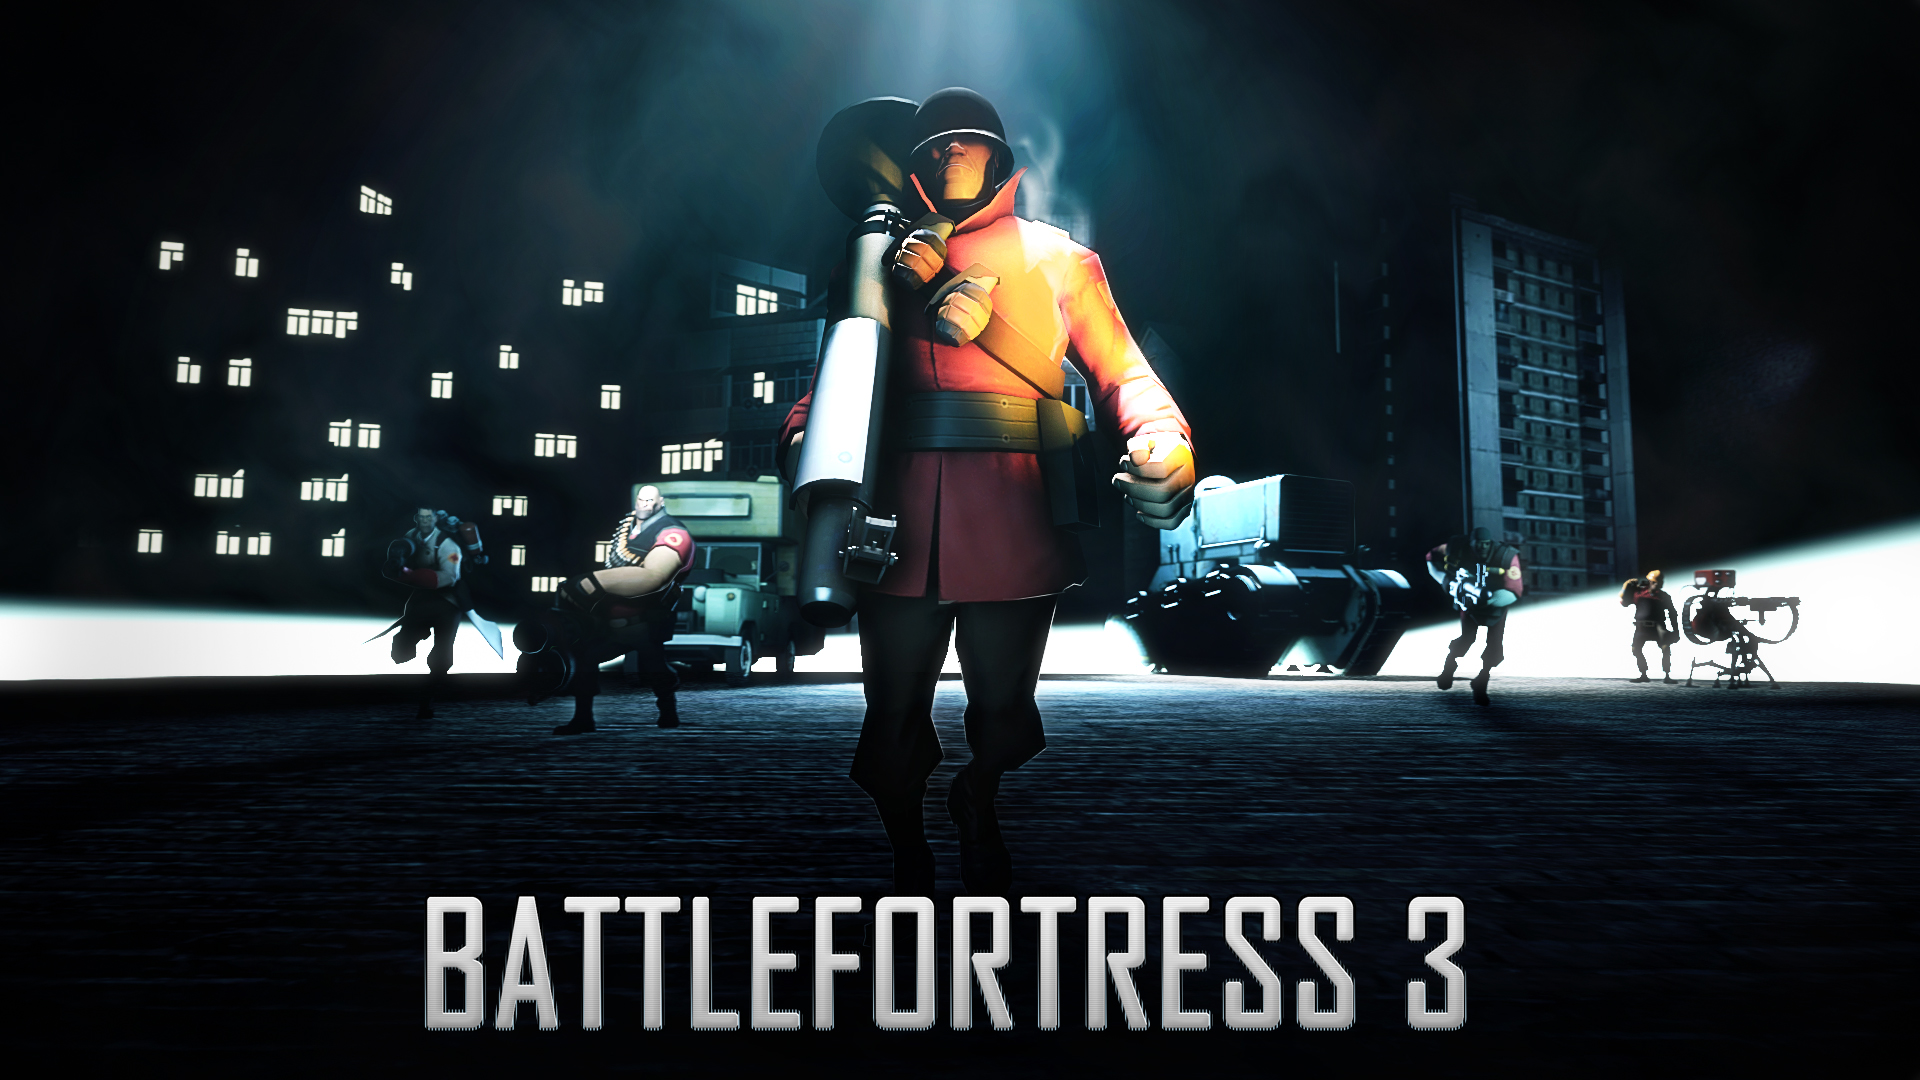 BattleFortress 3 by DP-films